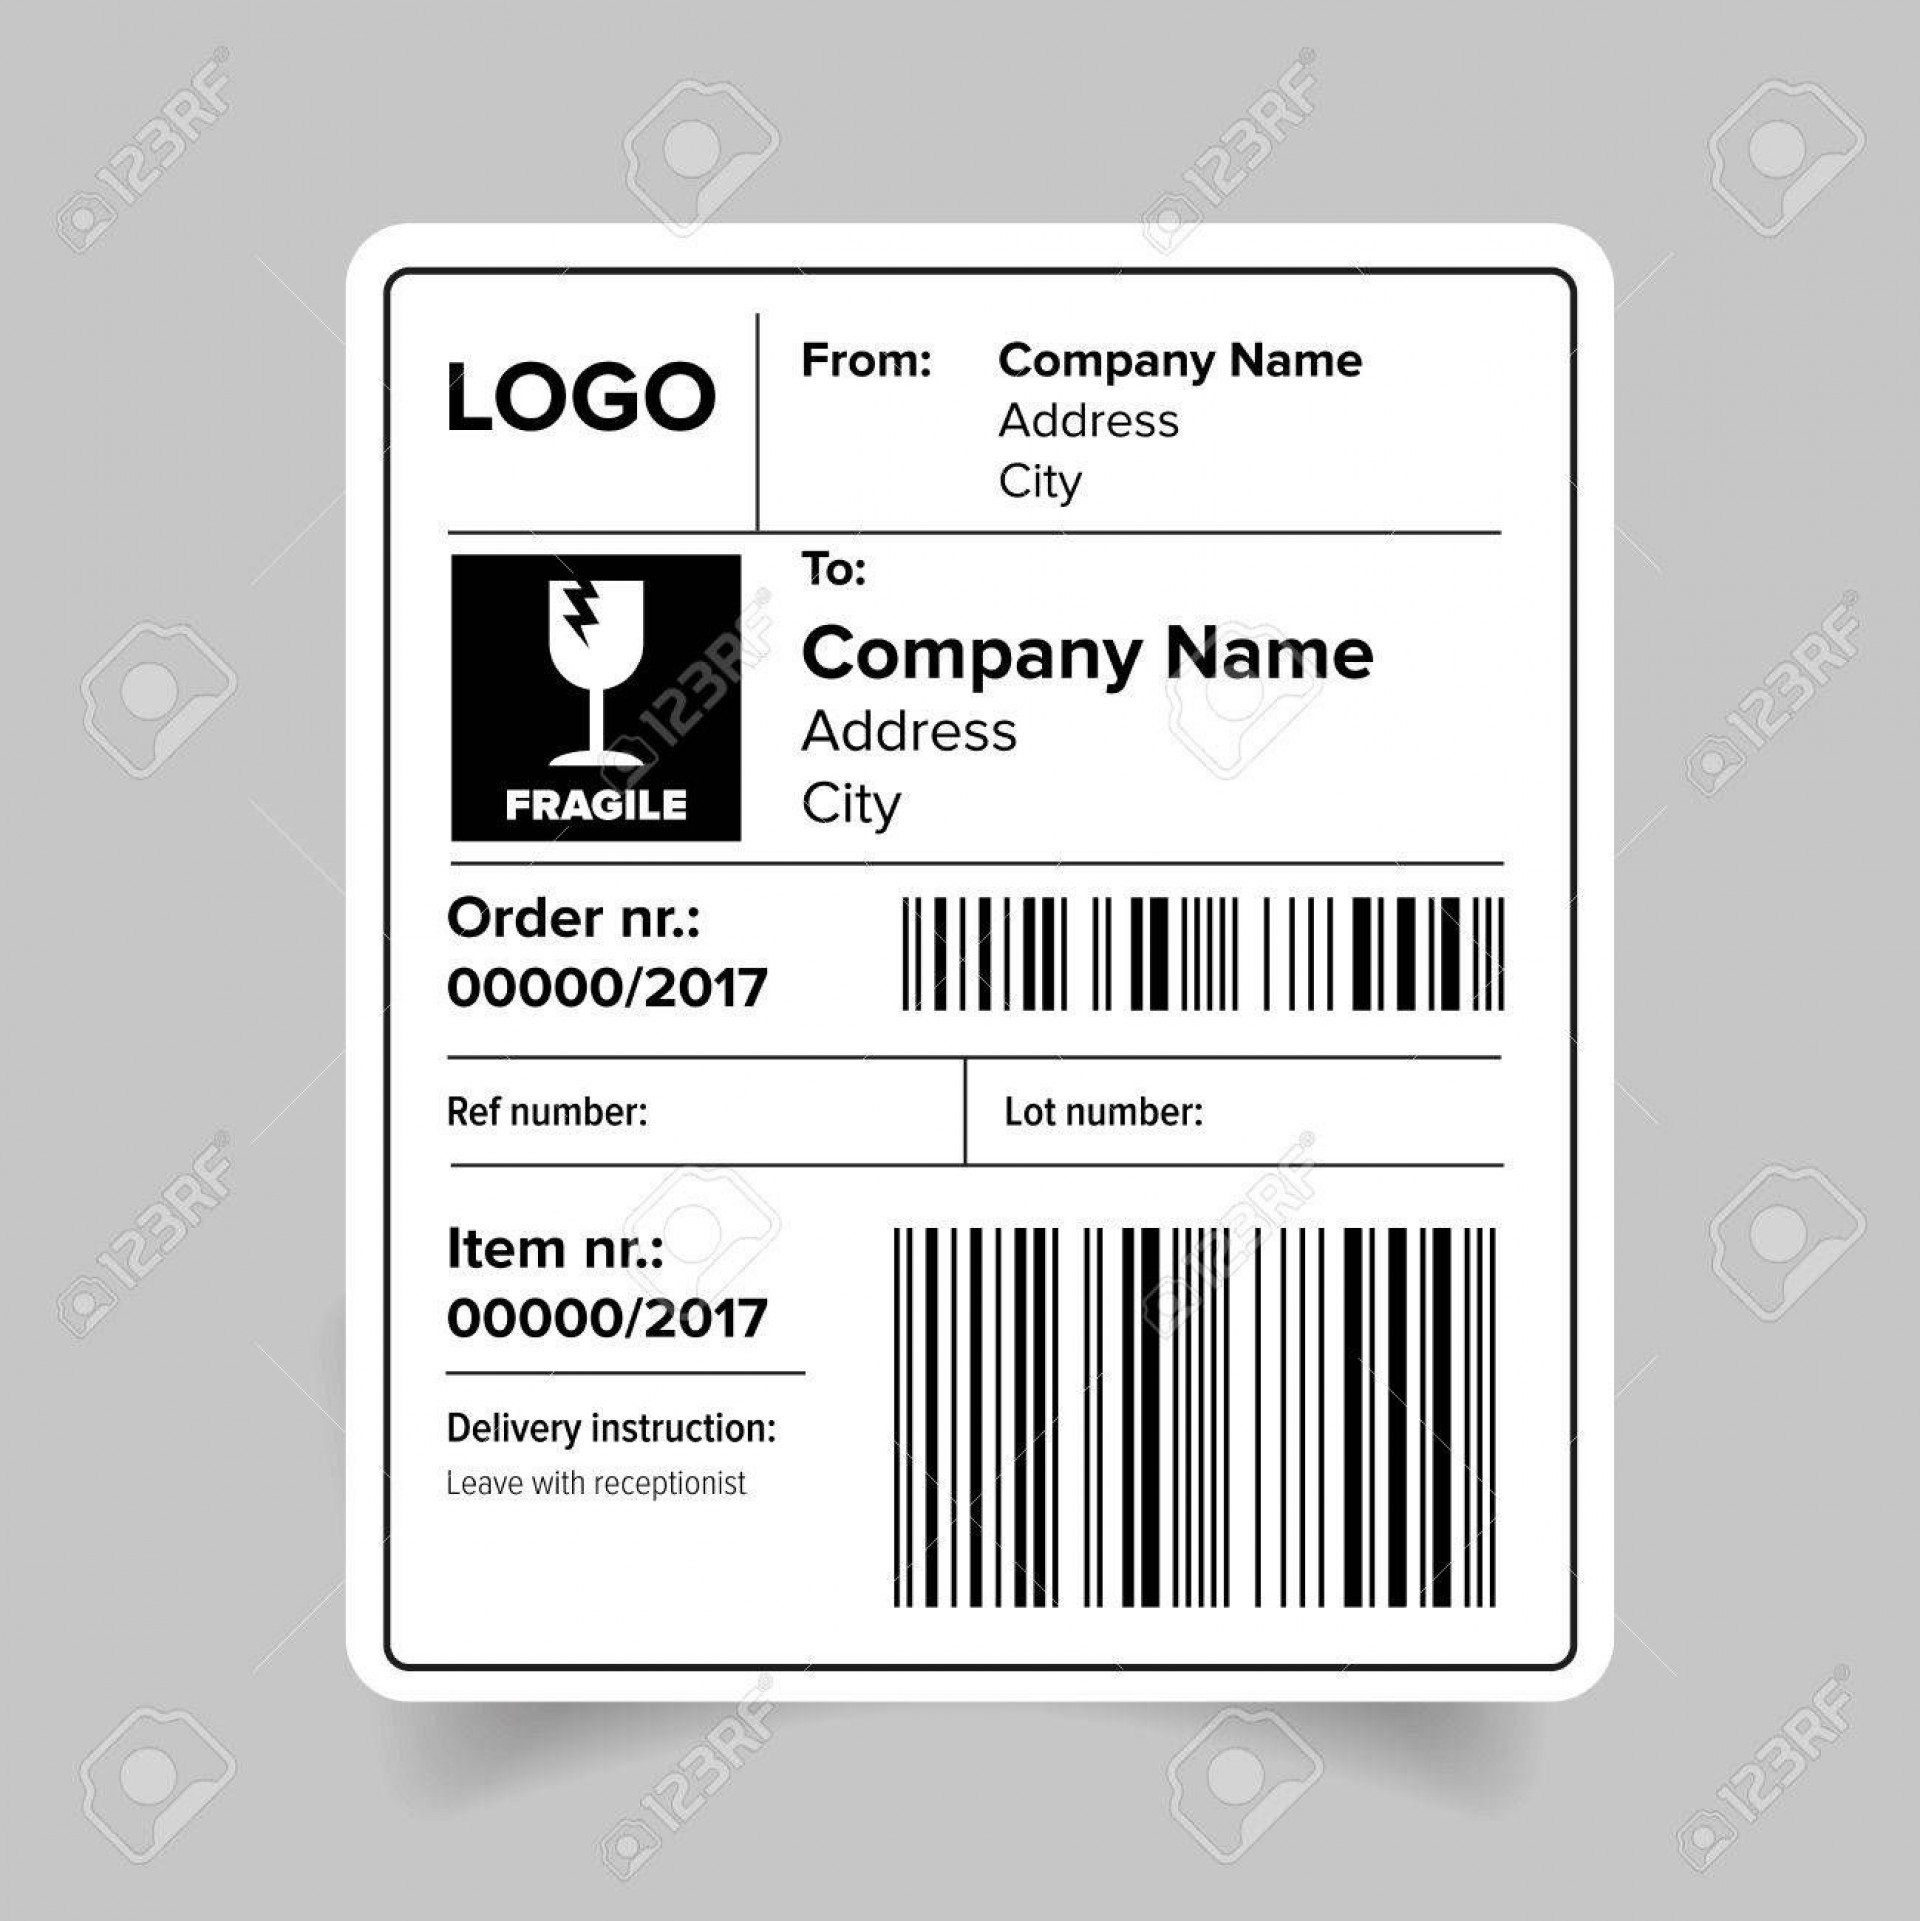 004 Best Free Shipping Label Format Example 1920